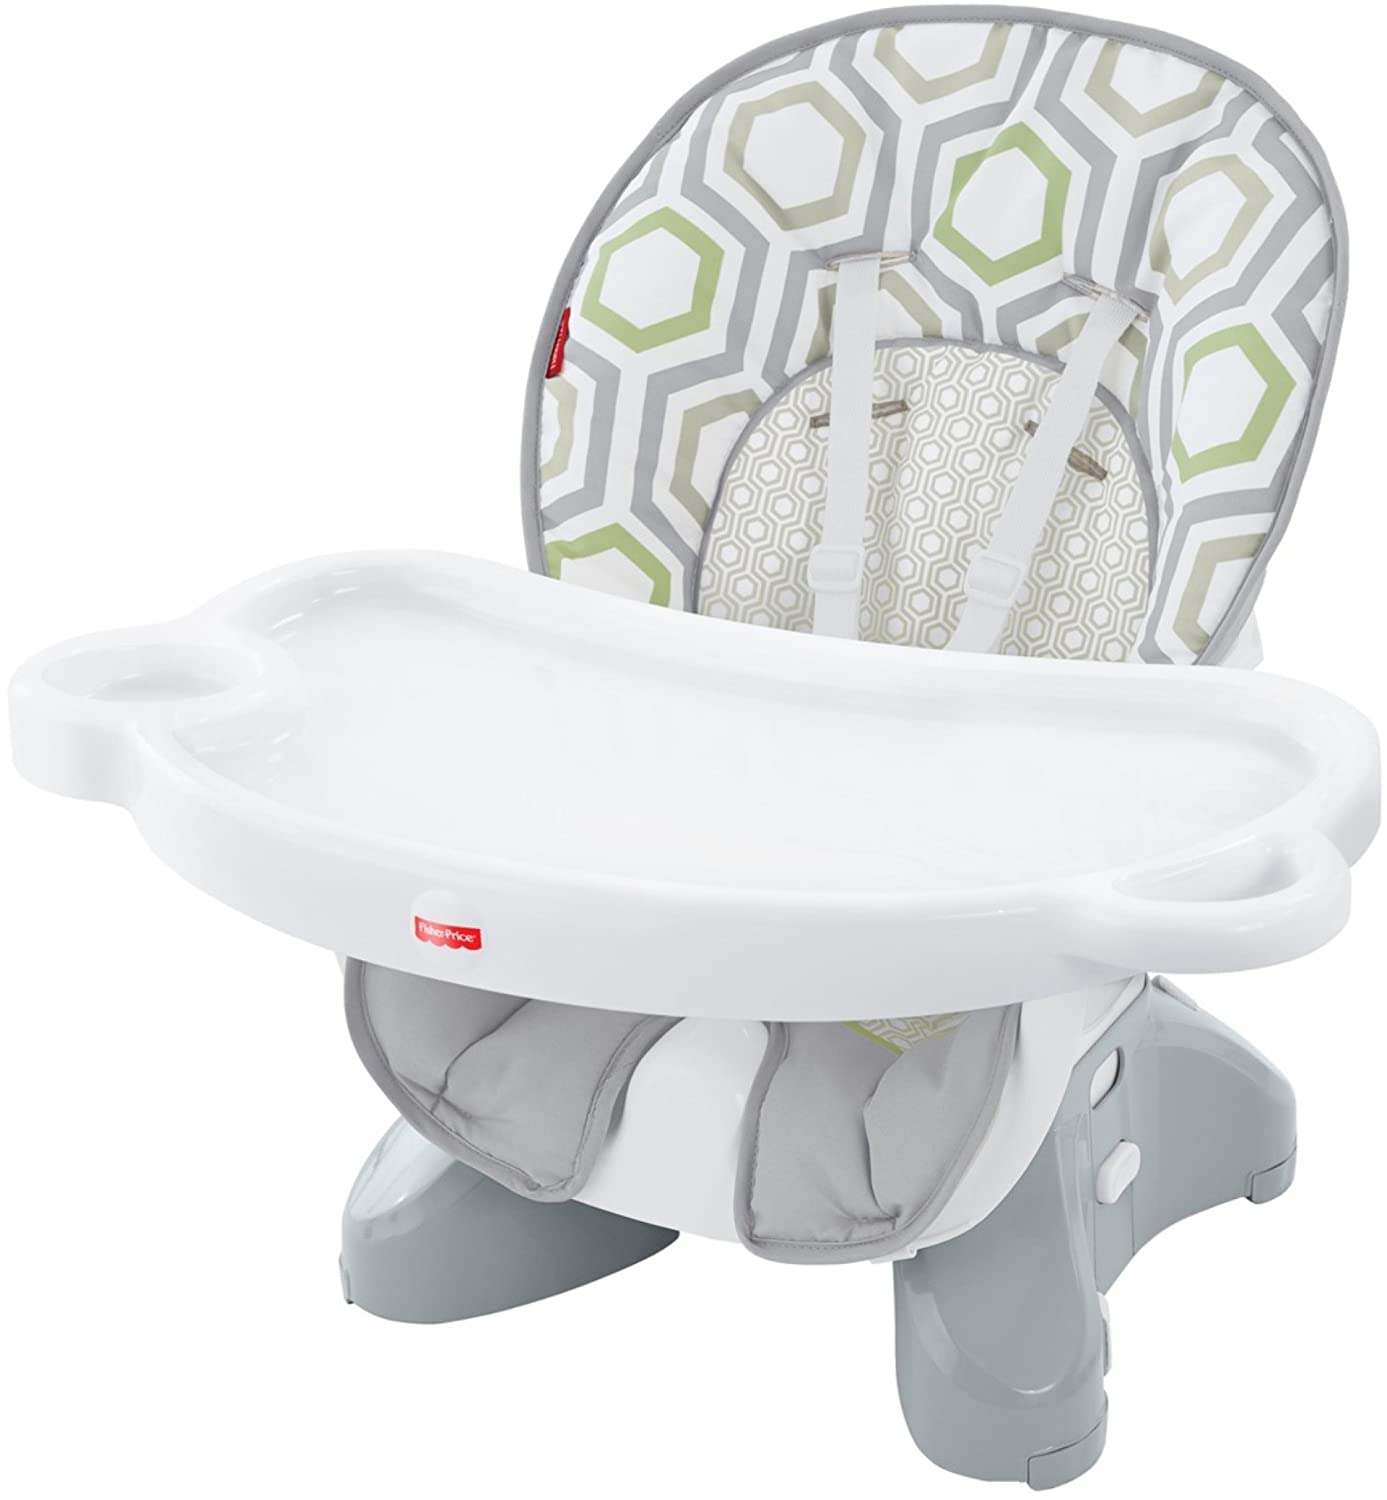 Fisher-Price SpaceSaver High Chair, Geo Meadow Amazonca/FISNE DKR70